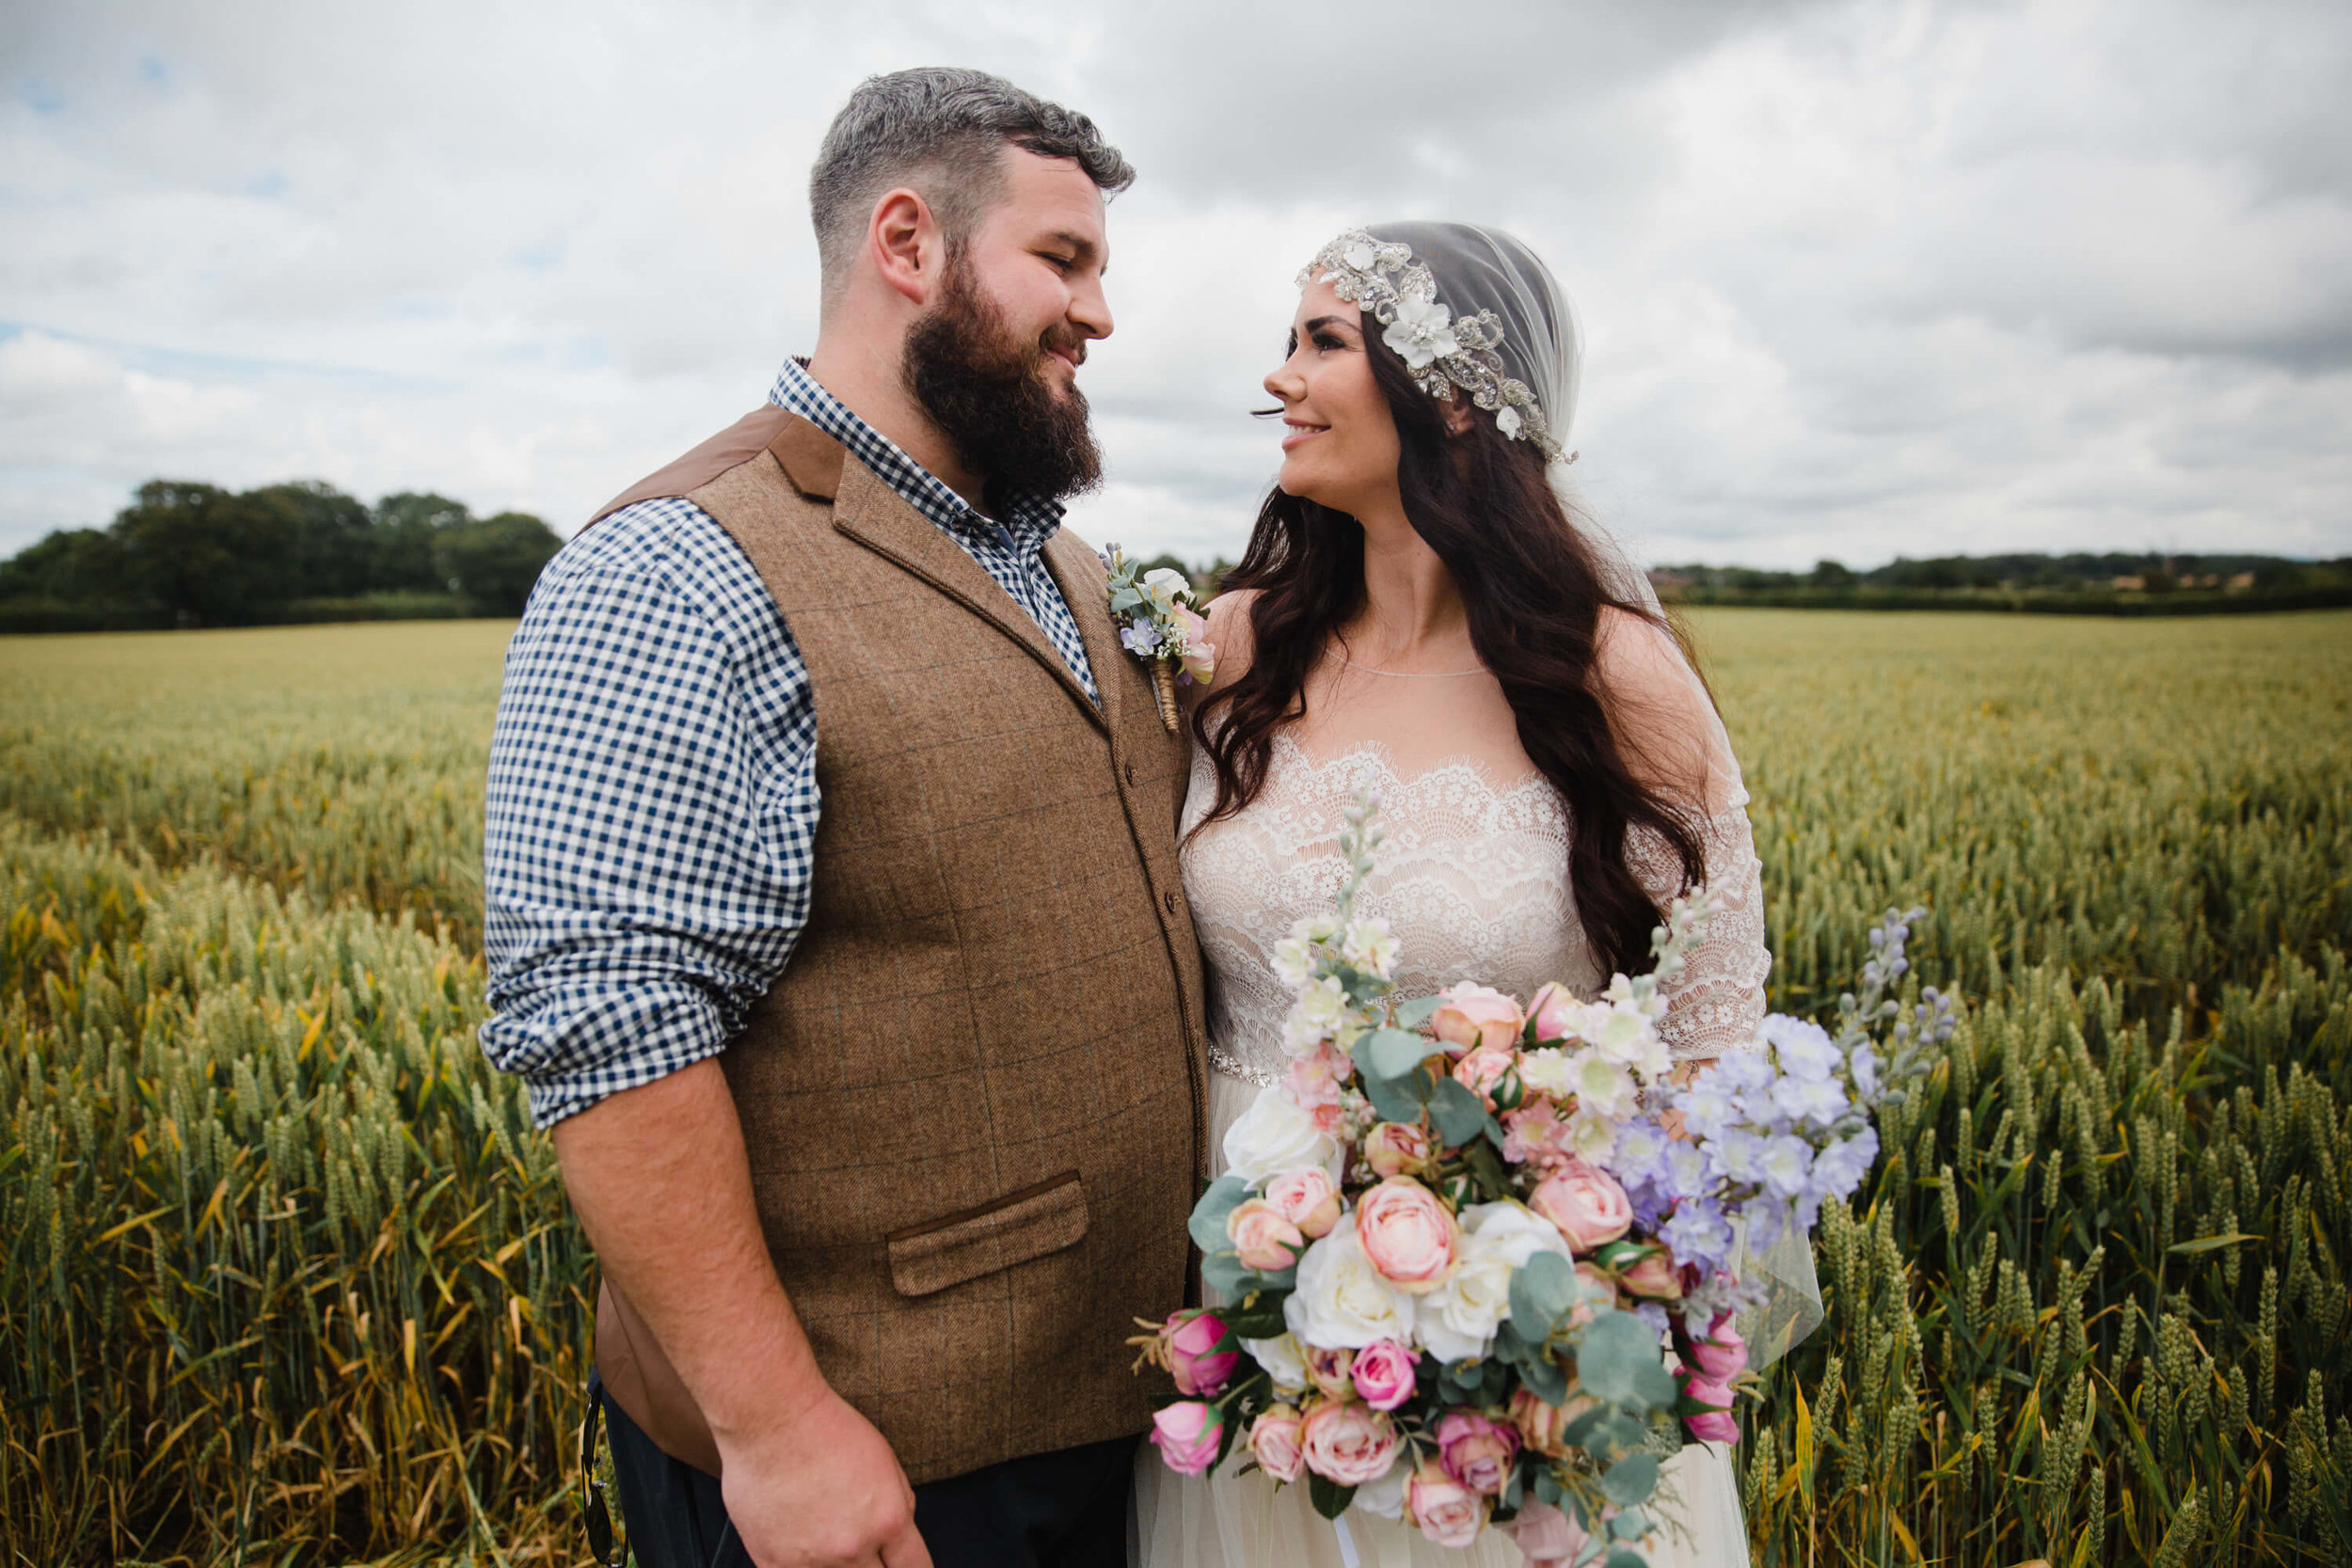 newlyweds sharing loving expression to one another in wheat fields